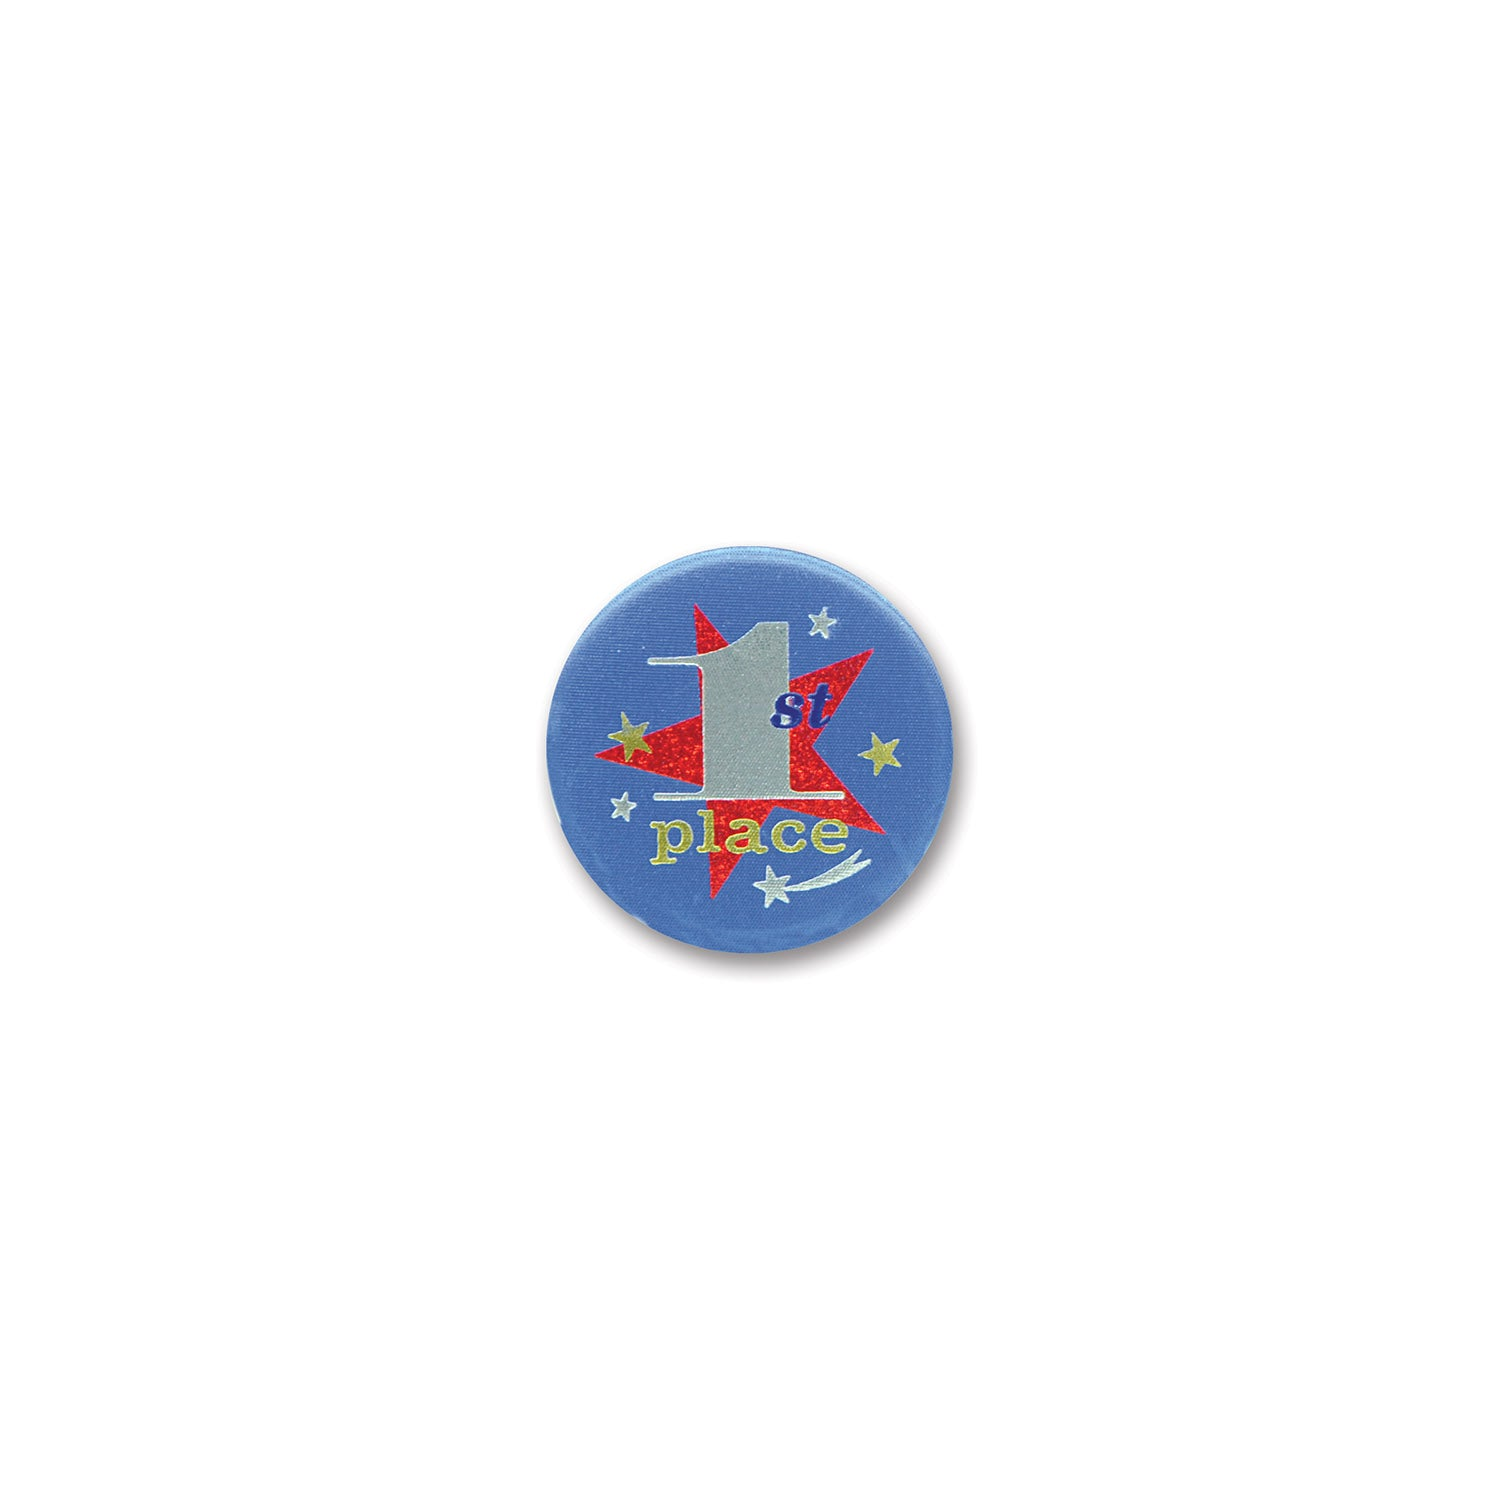 1st Place Satin Button by Beistle - Sports Theme Decorations